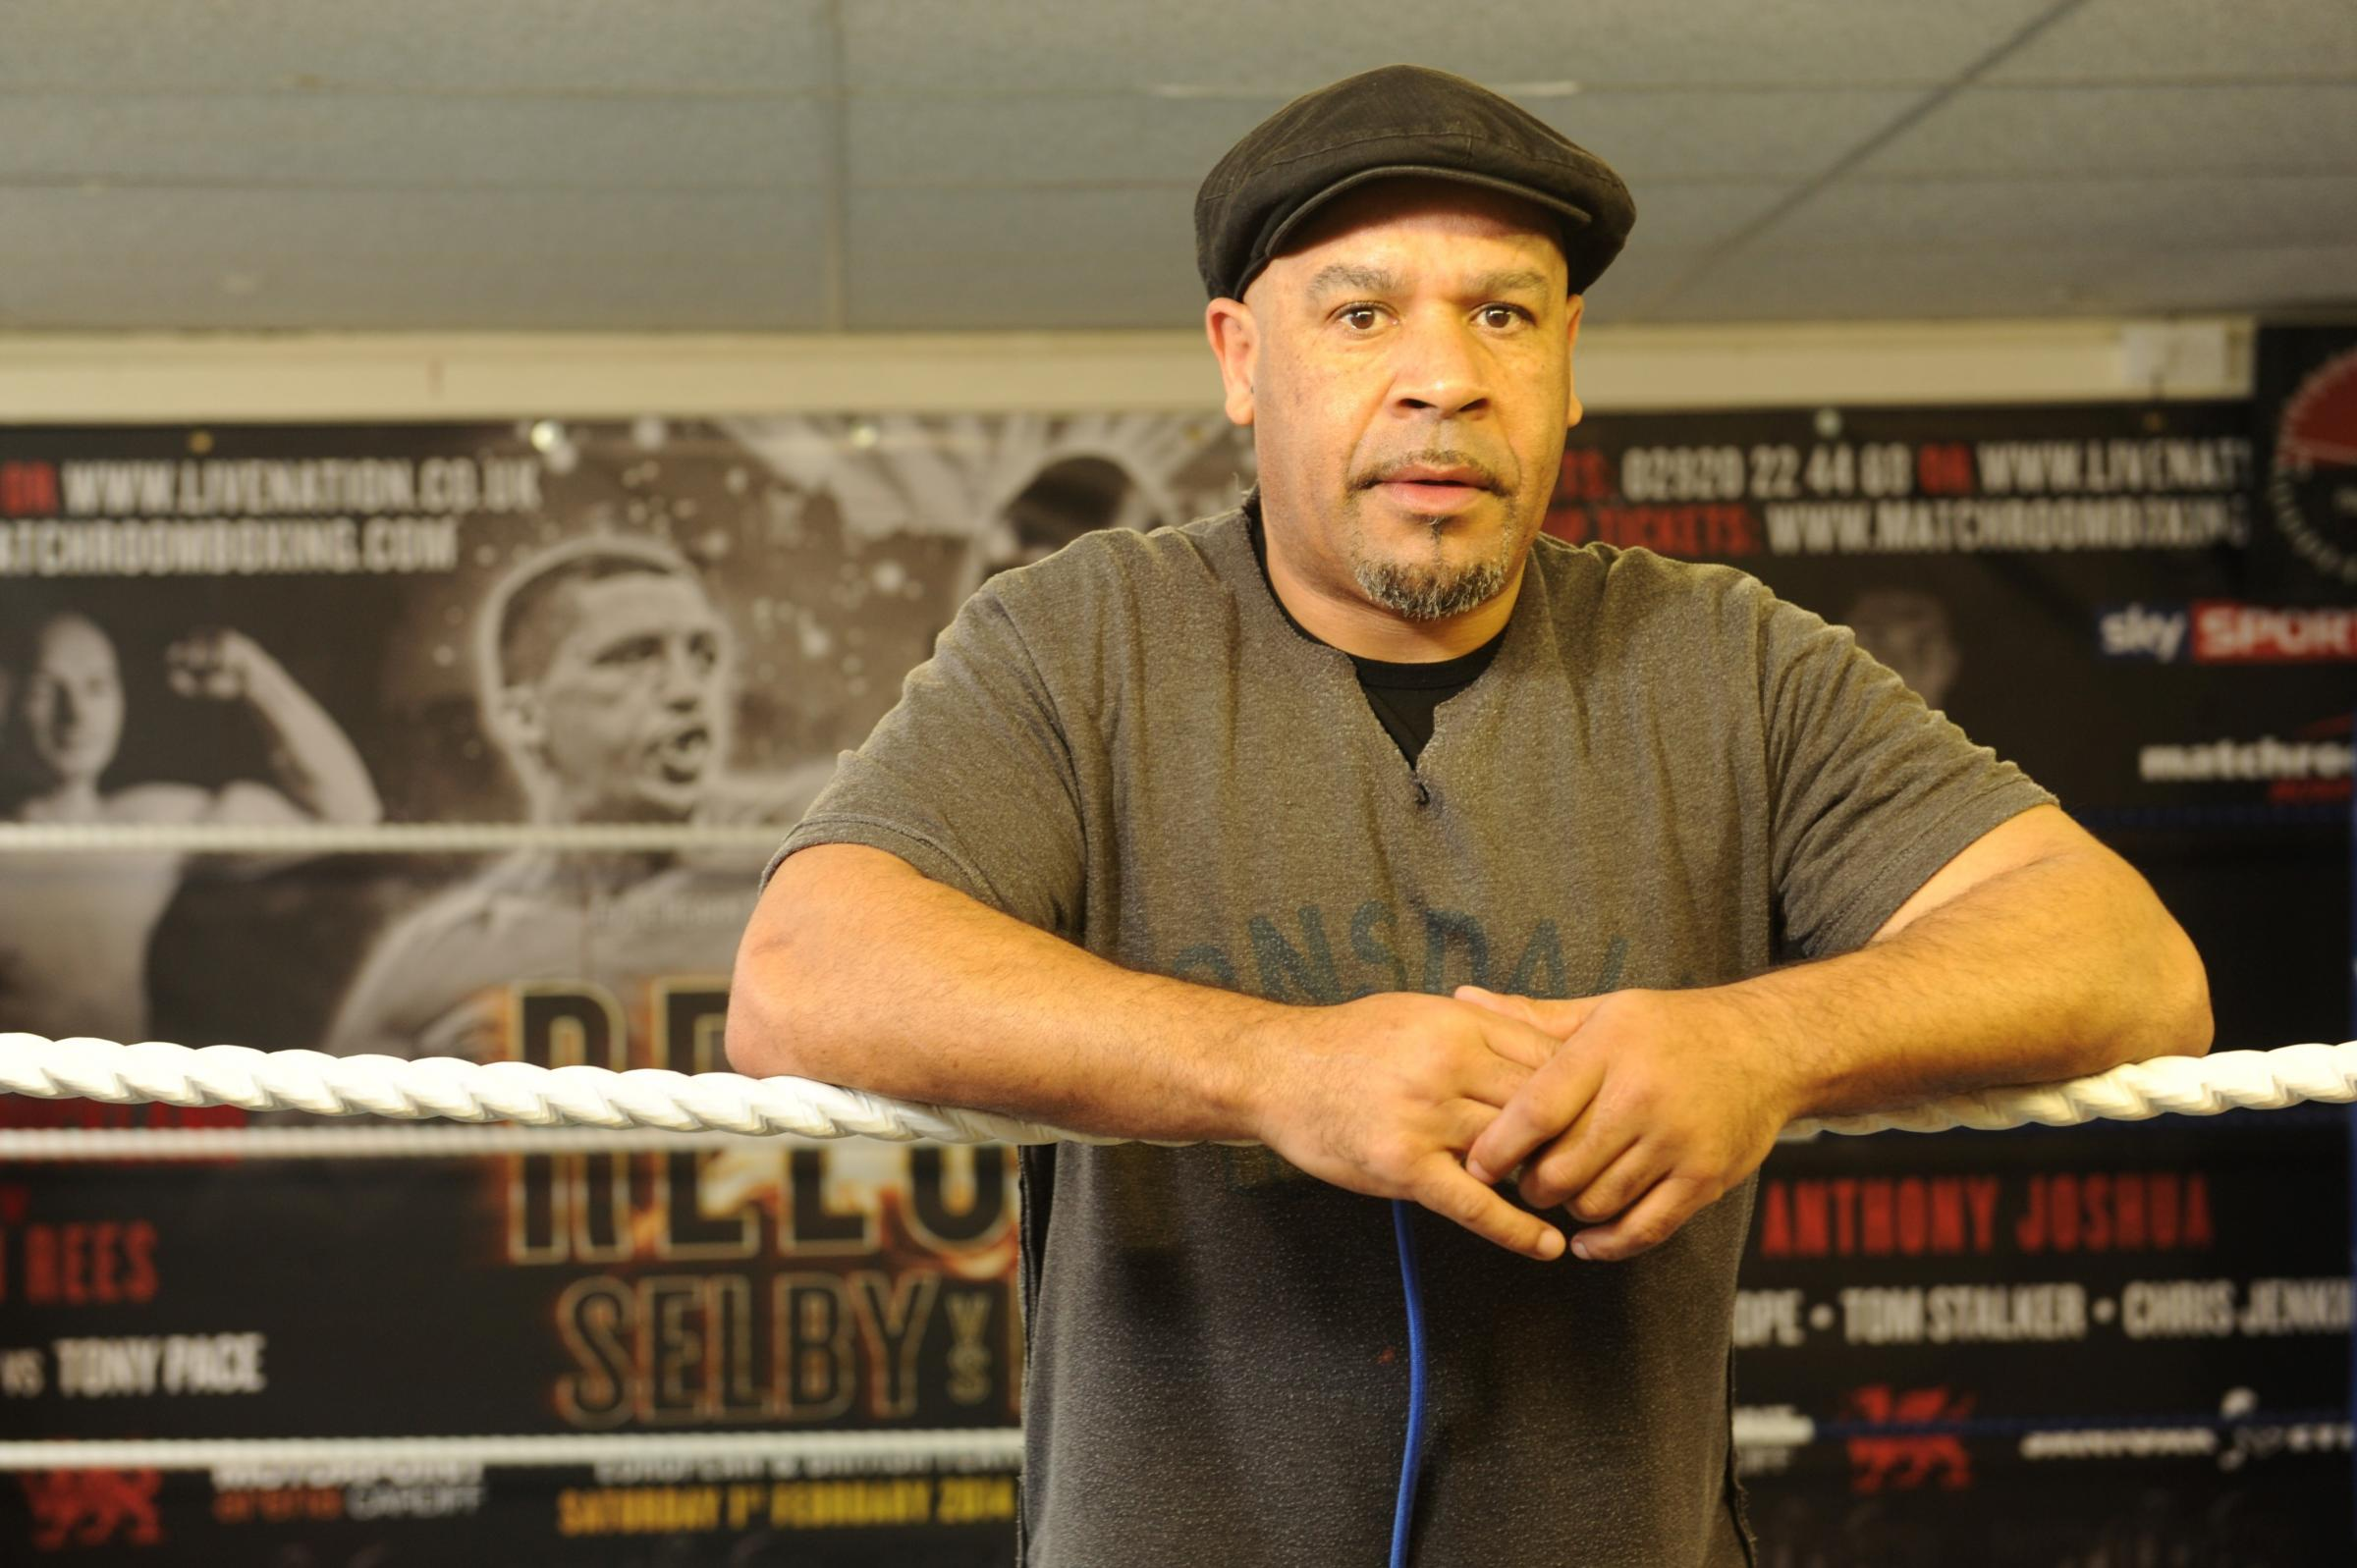 LET'S GO TO WORK: Boxing trainer Tony Borg